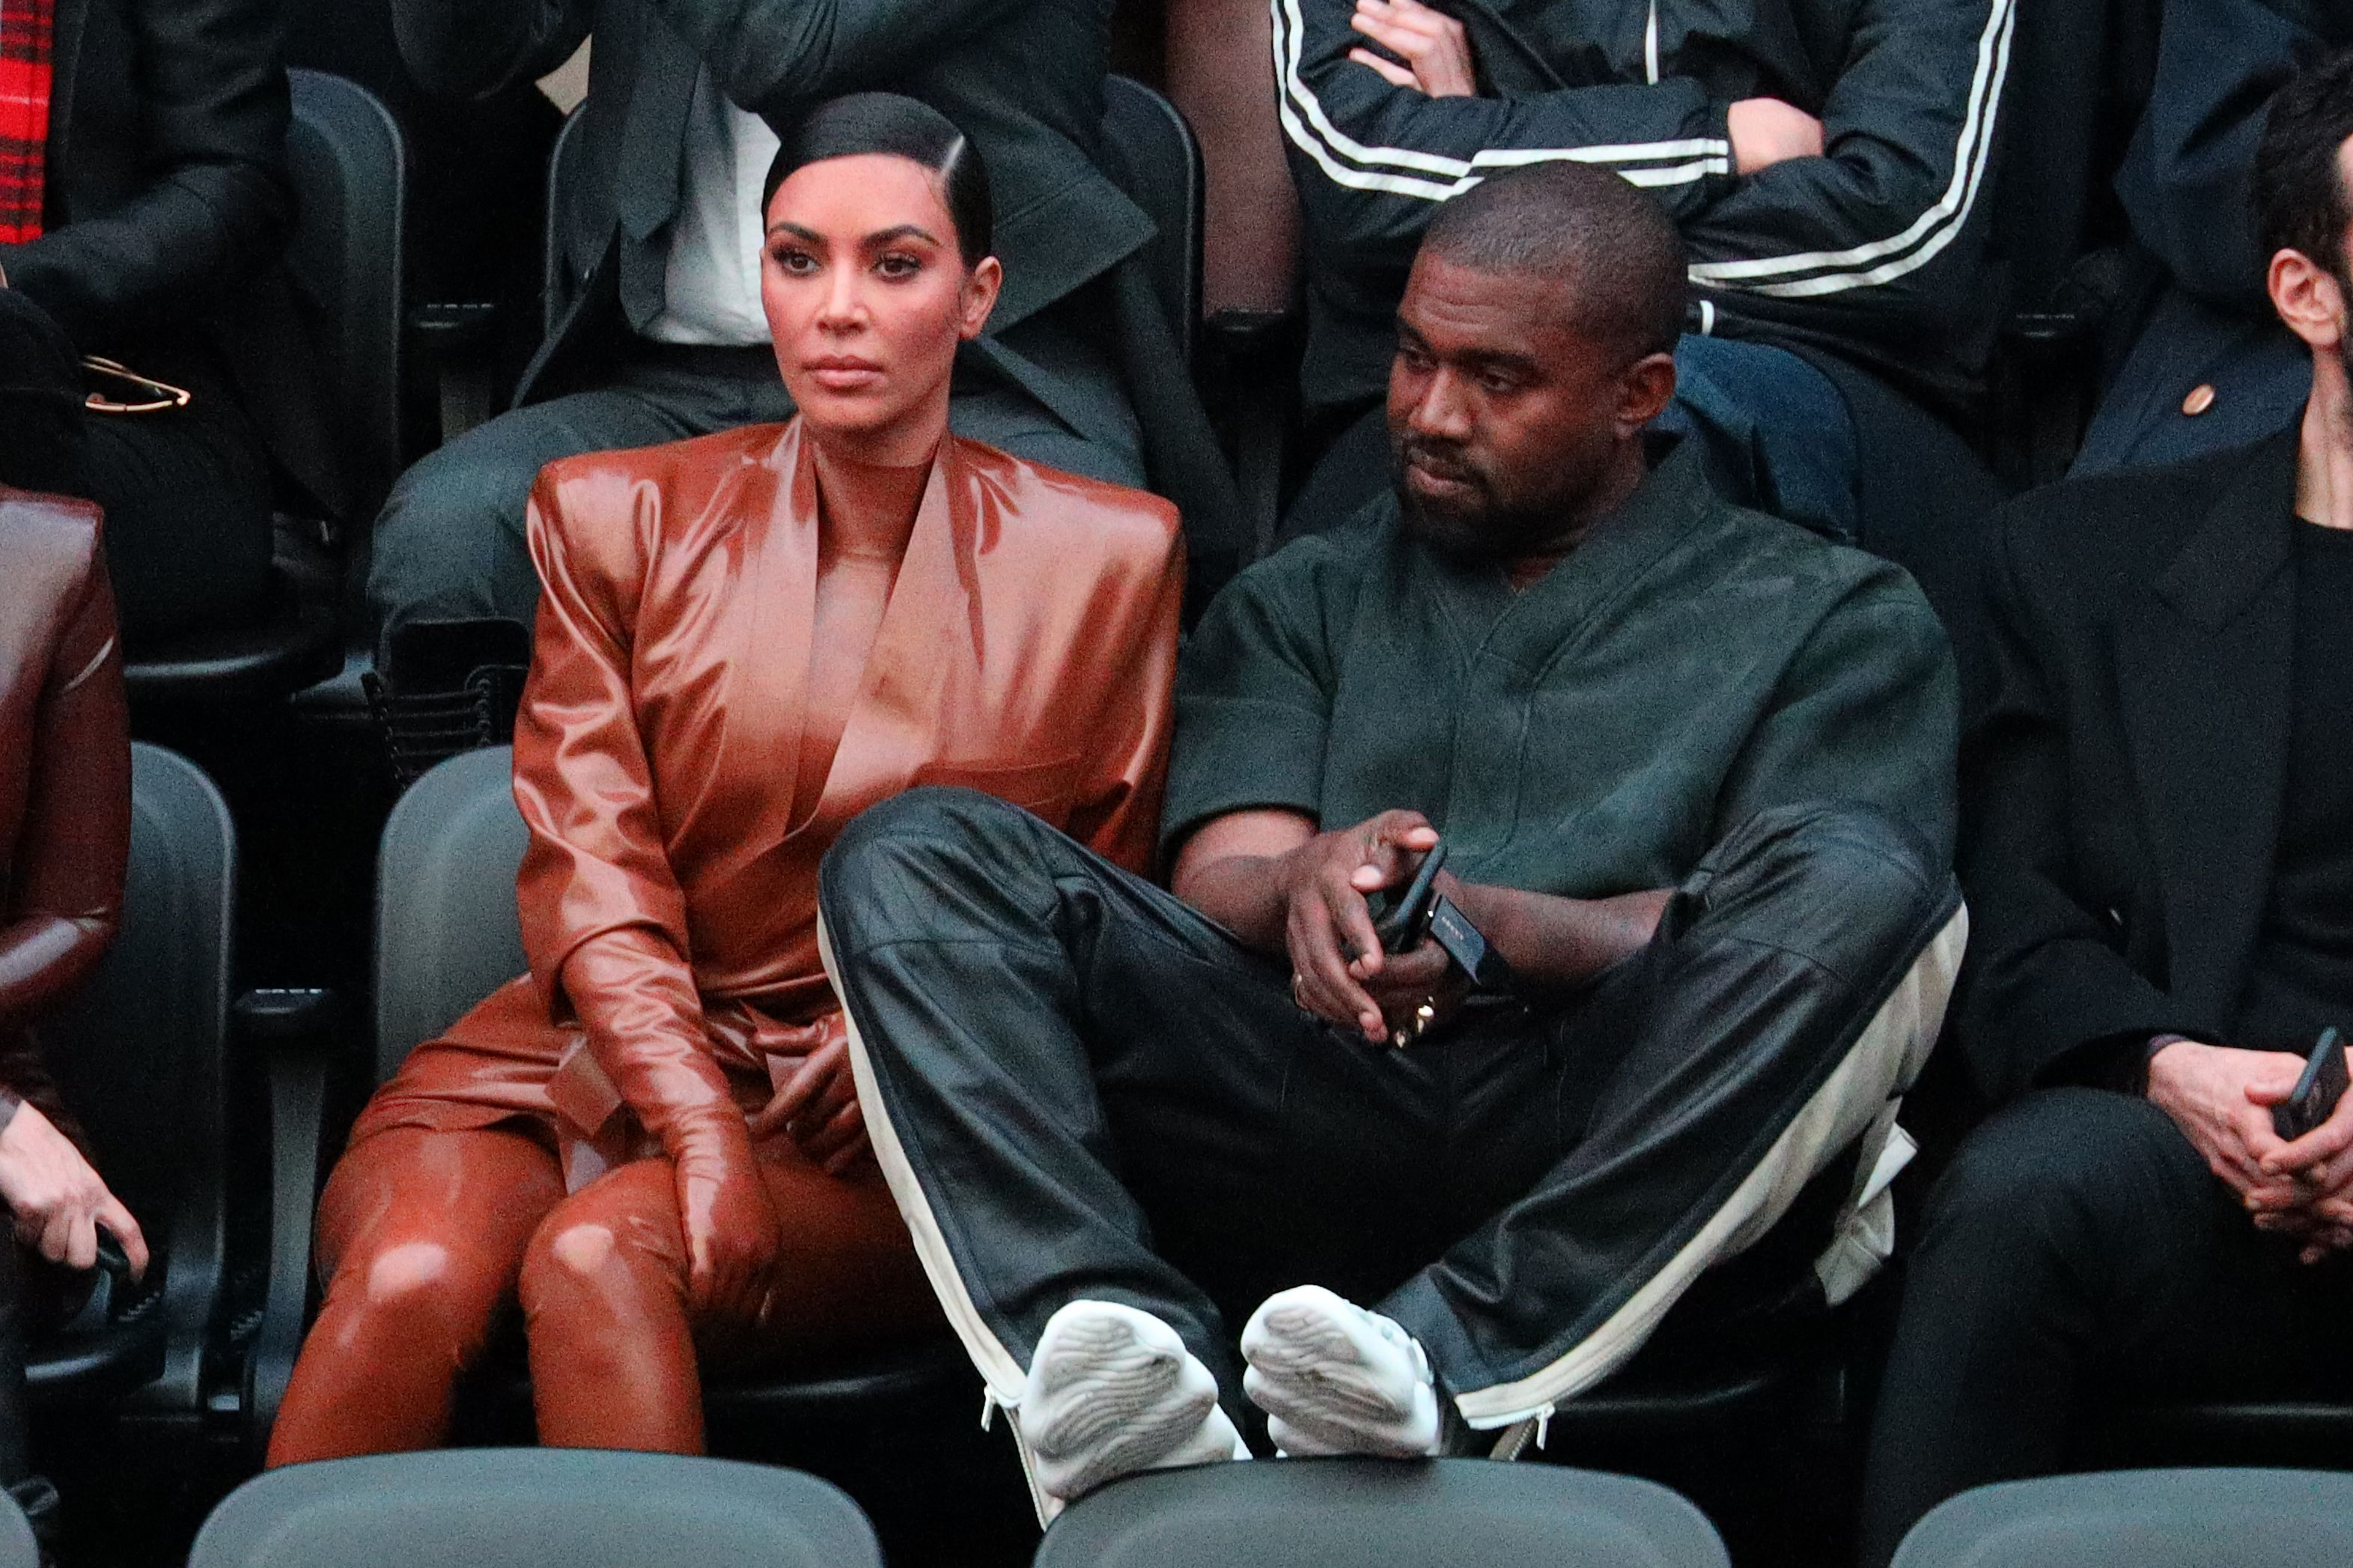 Kim Kardashian and Kanye West attend the Balenciaga show on March 01, 2020 / Getty Images